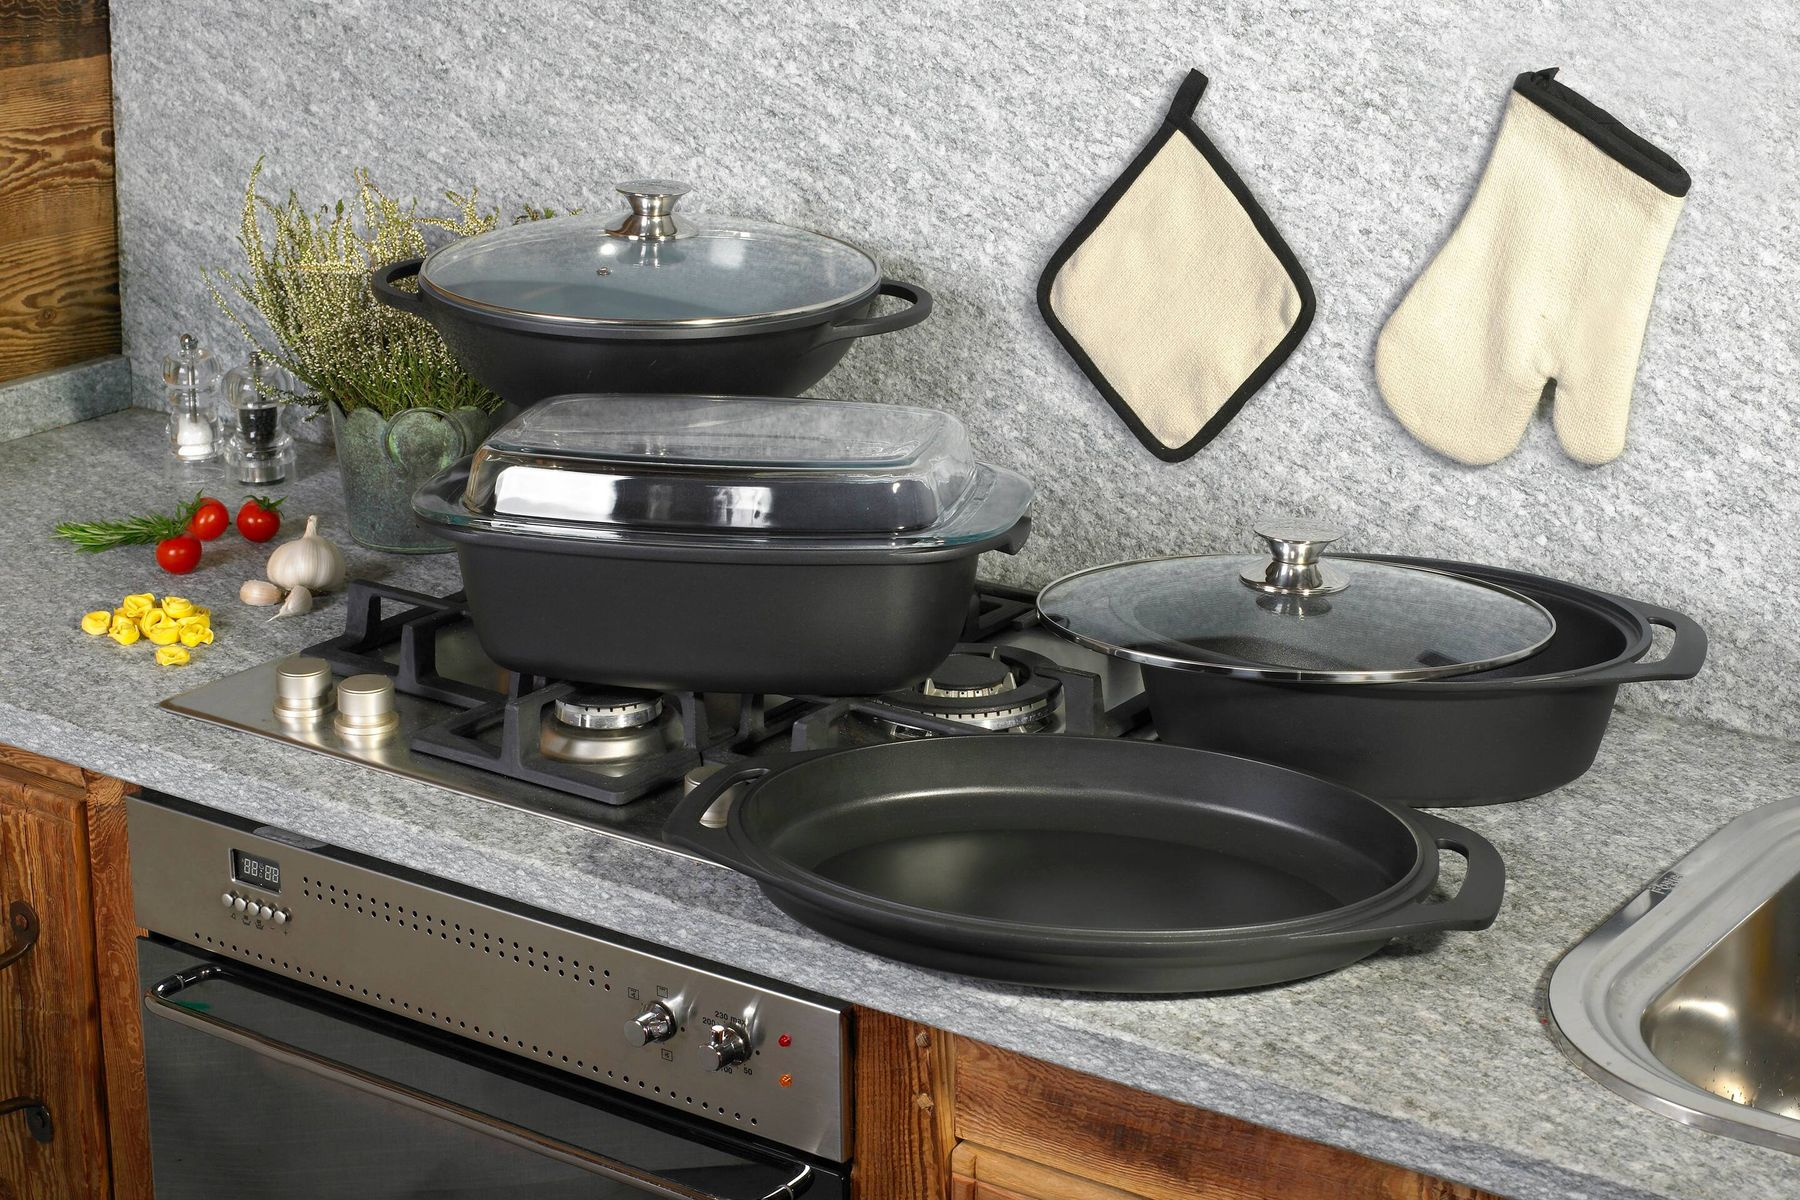 Tips and Tricks to Clean Your Burnt Non-Stick Cookware